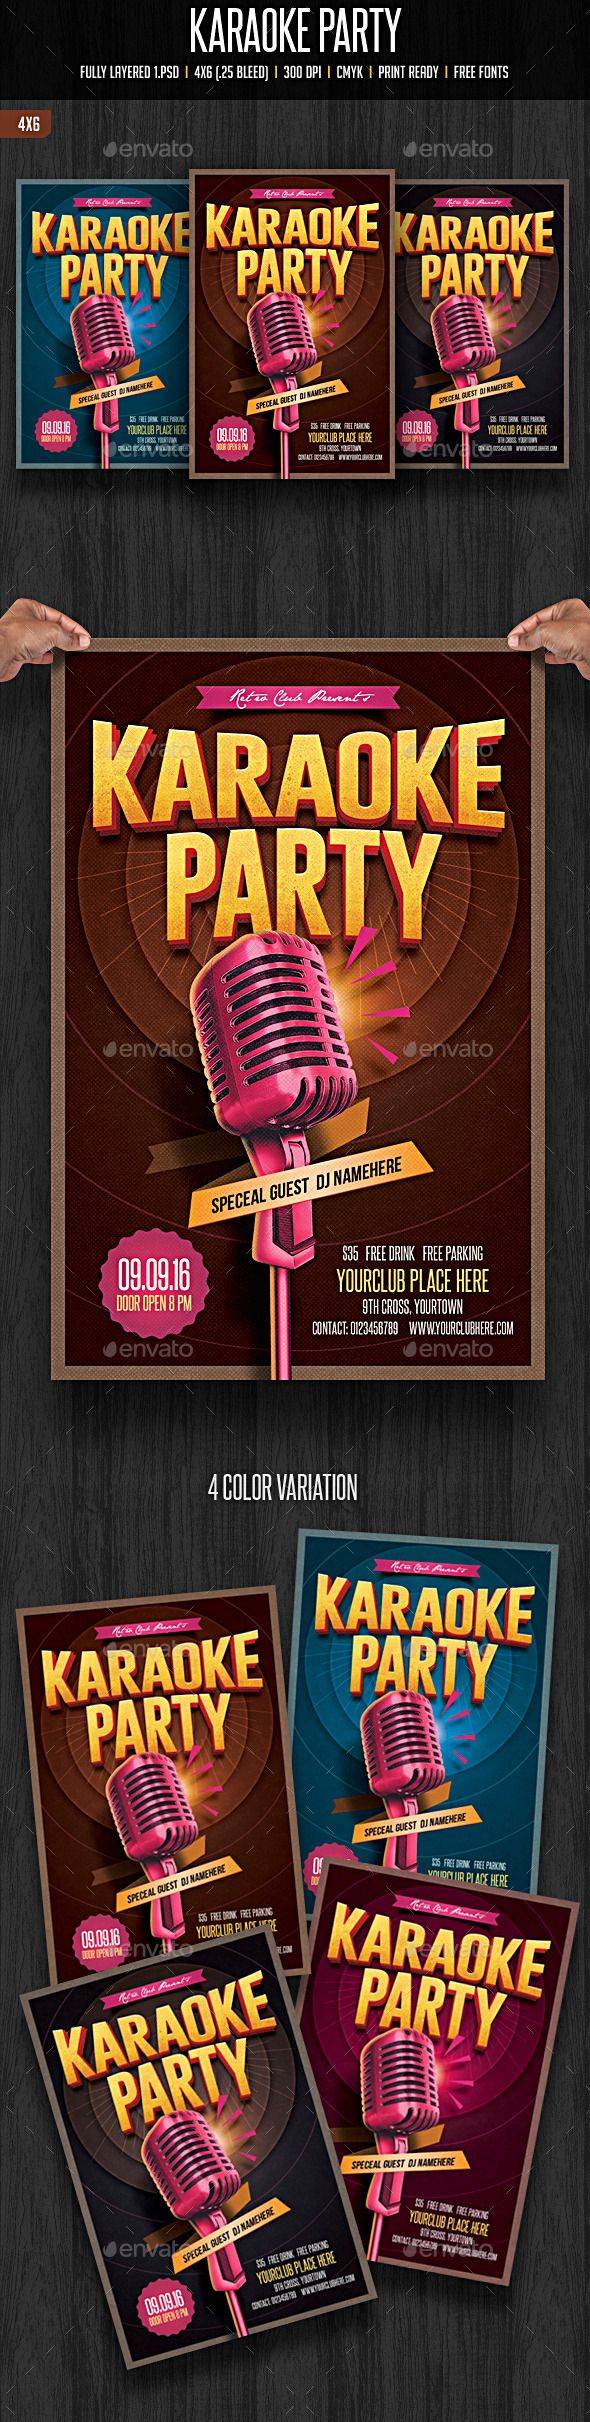 Karaoke Party Flyer Template #design Download: http://graphicriver.net/item/karaoke-party/12134243?ref=ksioks